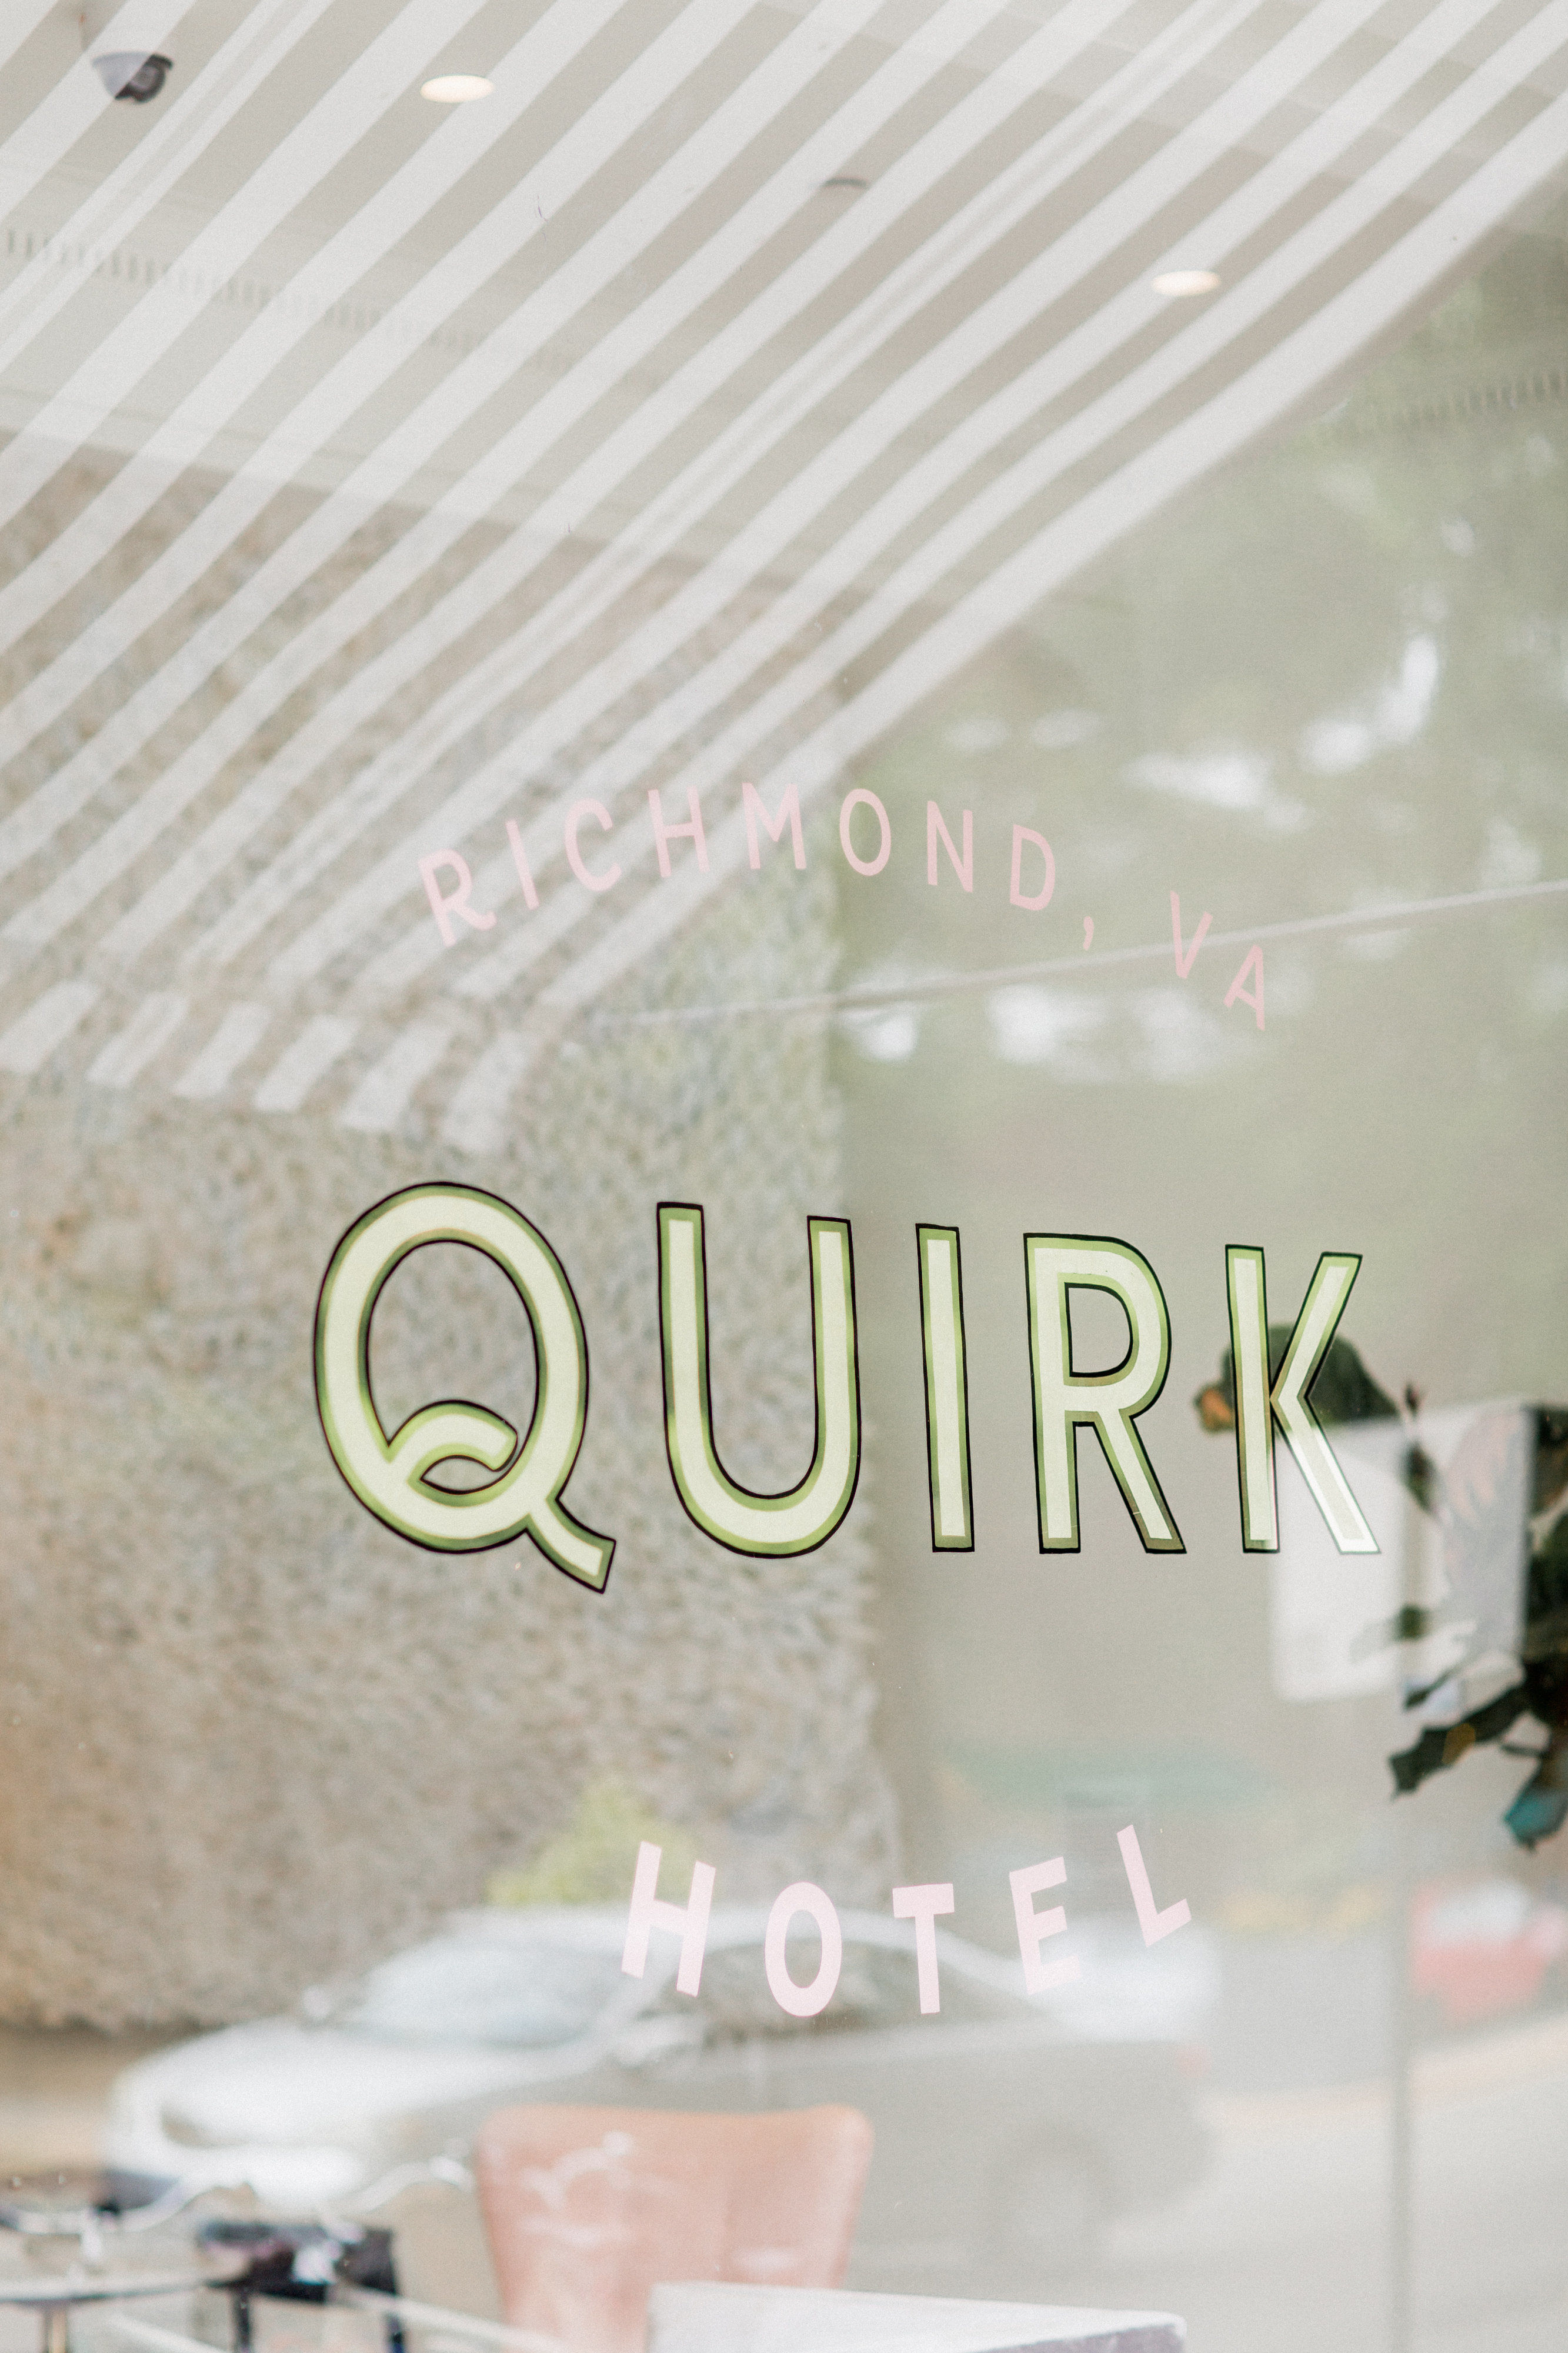 Quirk Hotel - Richmond, Virginia's New Boutique Hotel